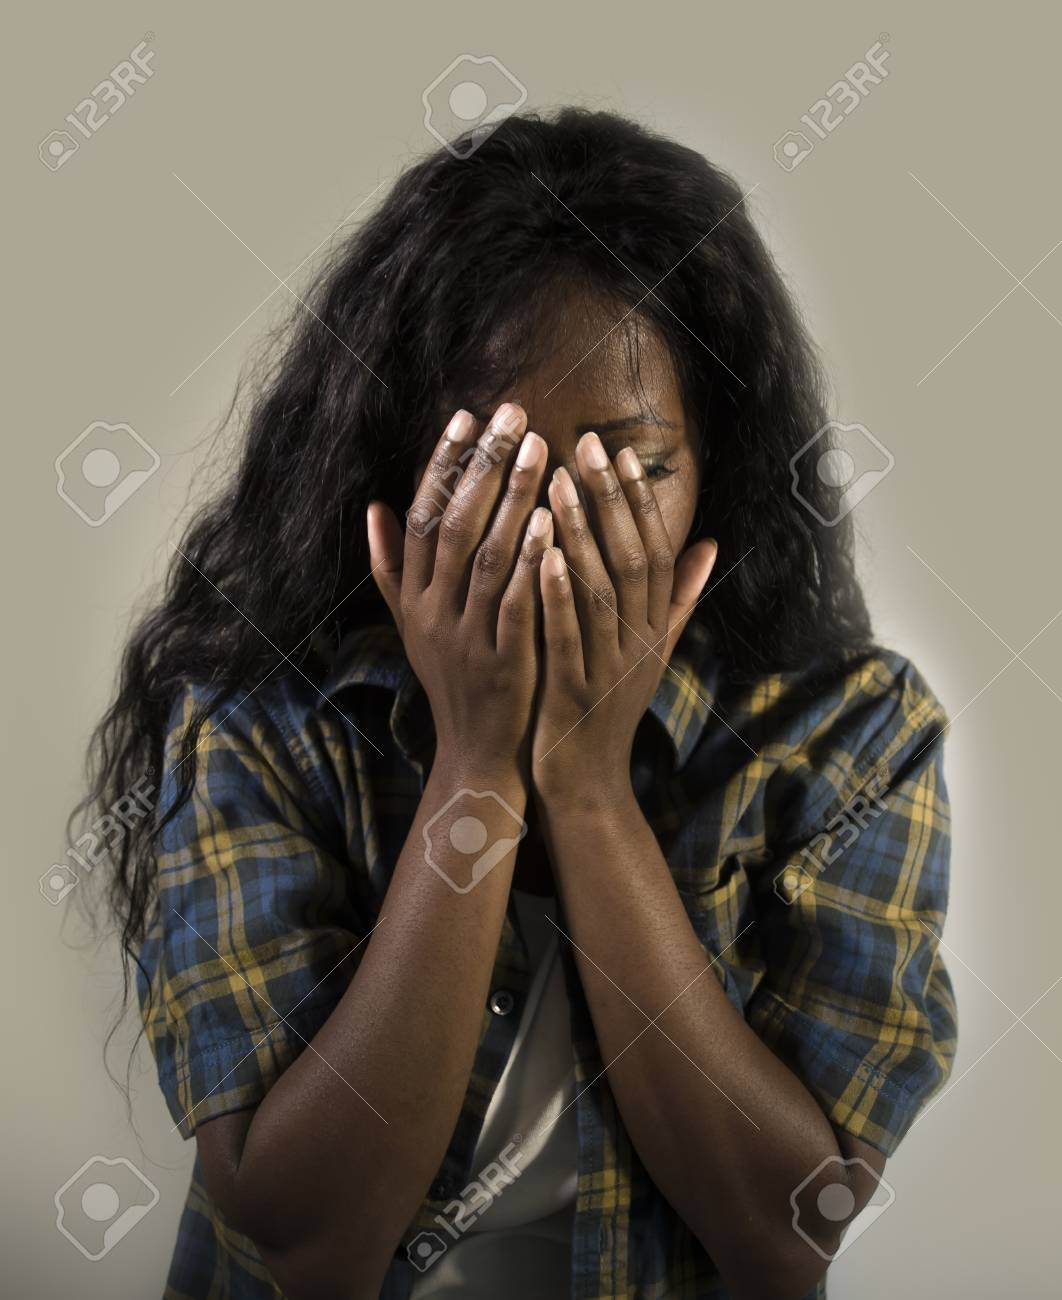 Image result for picture of a black depressed woman